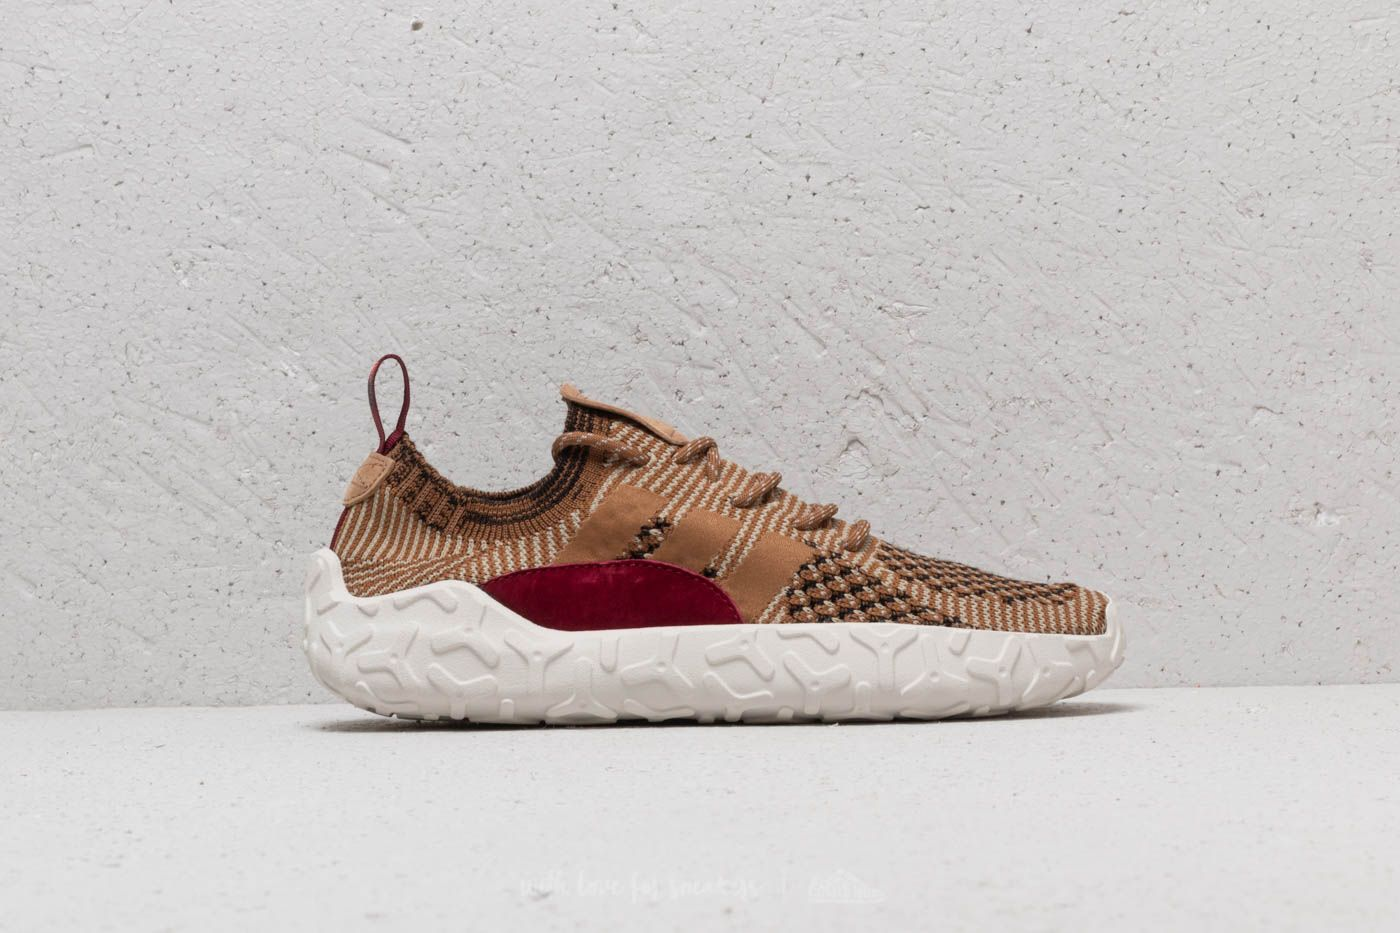 sports shoes 2ee02 b631a adidas F22 Primeknit Raw Gold Raw Desert Collegiate Burgundy at a great